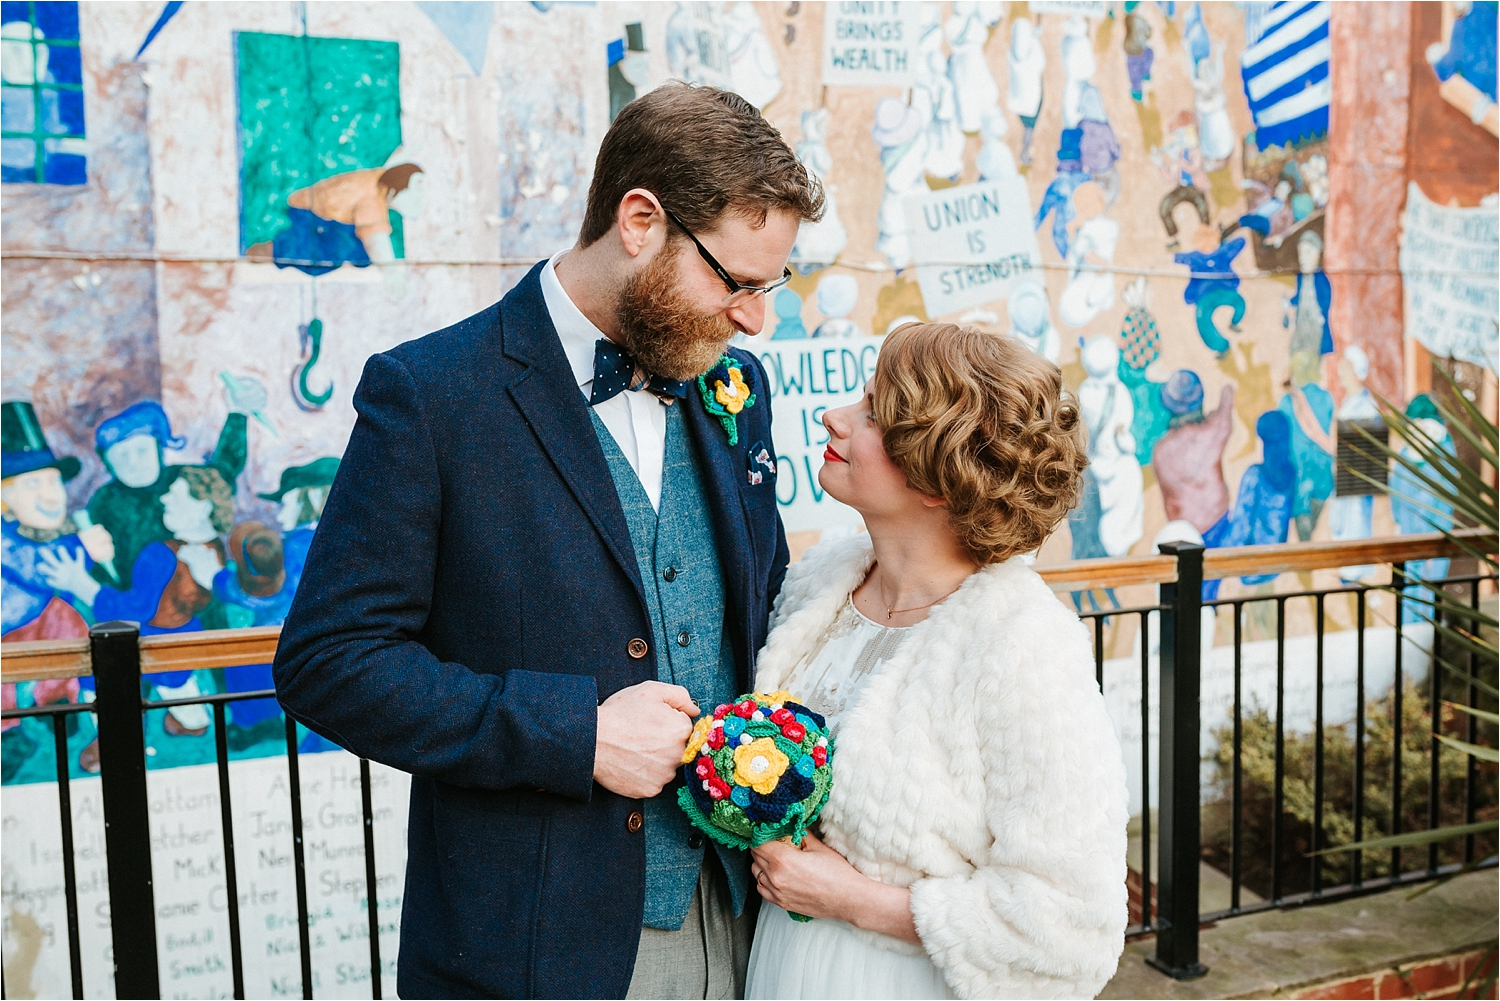 Victoria-Ben-The-West-Mill-darley-abbey-natural-relaxed-documentary-wedding-photography-photographer-Derby-Nottingham-Derbyshire-Nottinghamshire-Leicestershire-Lincolnshire-East-Midlands_0144.jpg